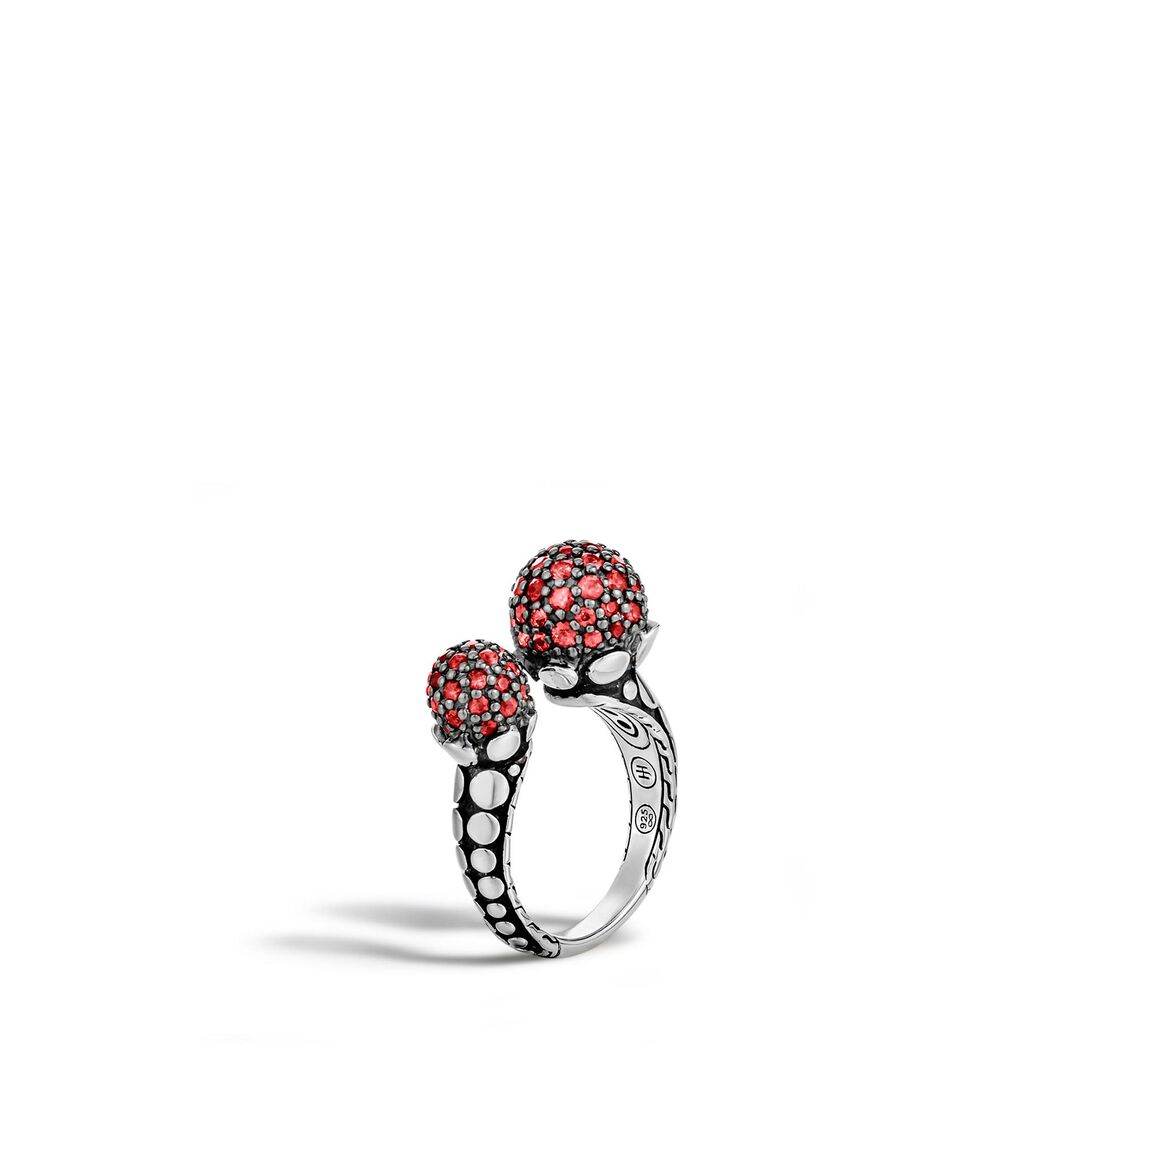 Dot Ring in Silver with Gemstone